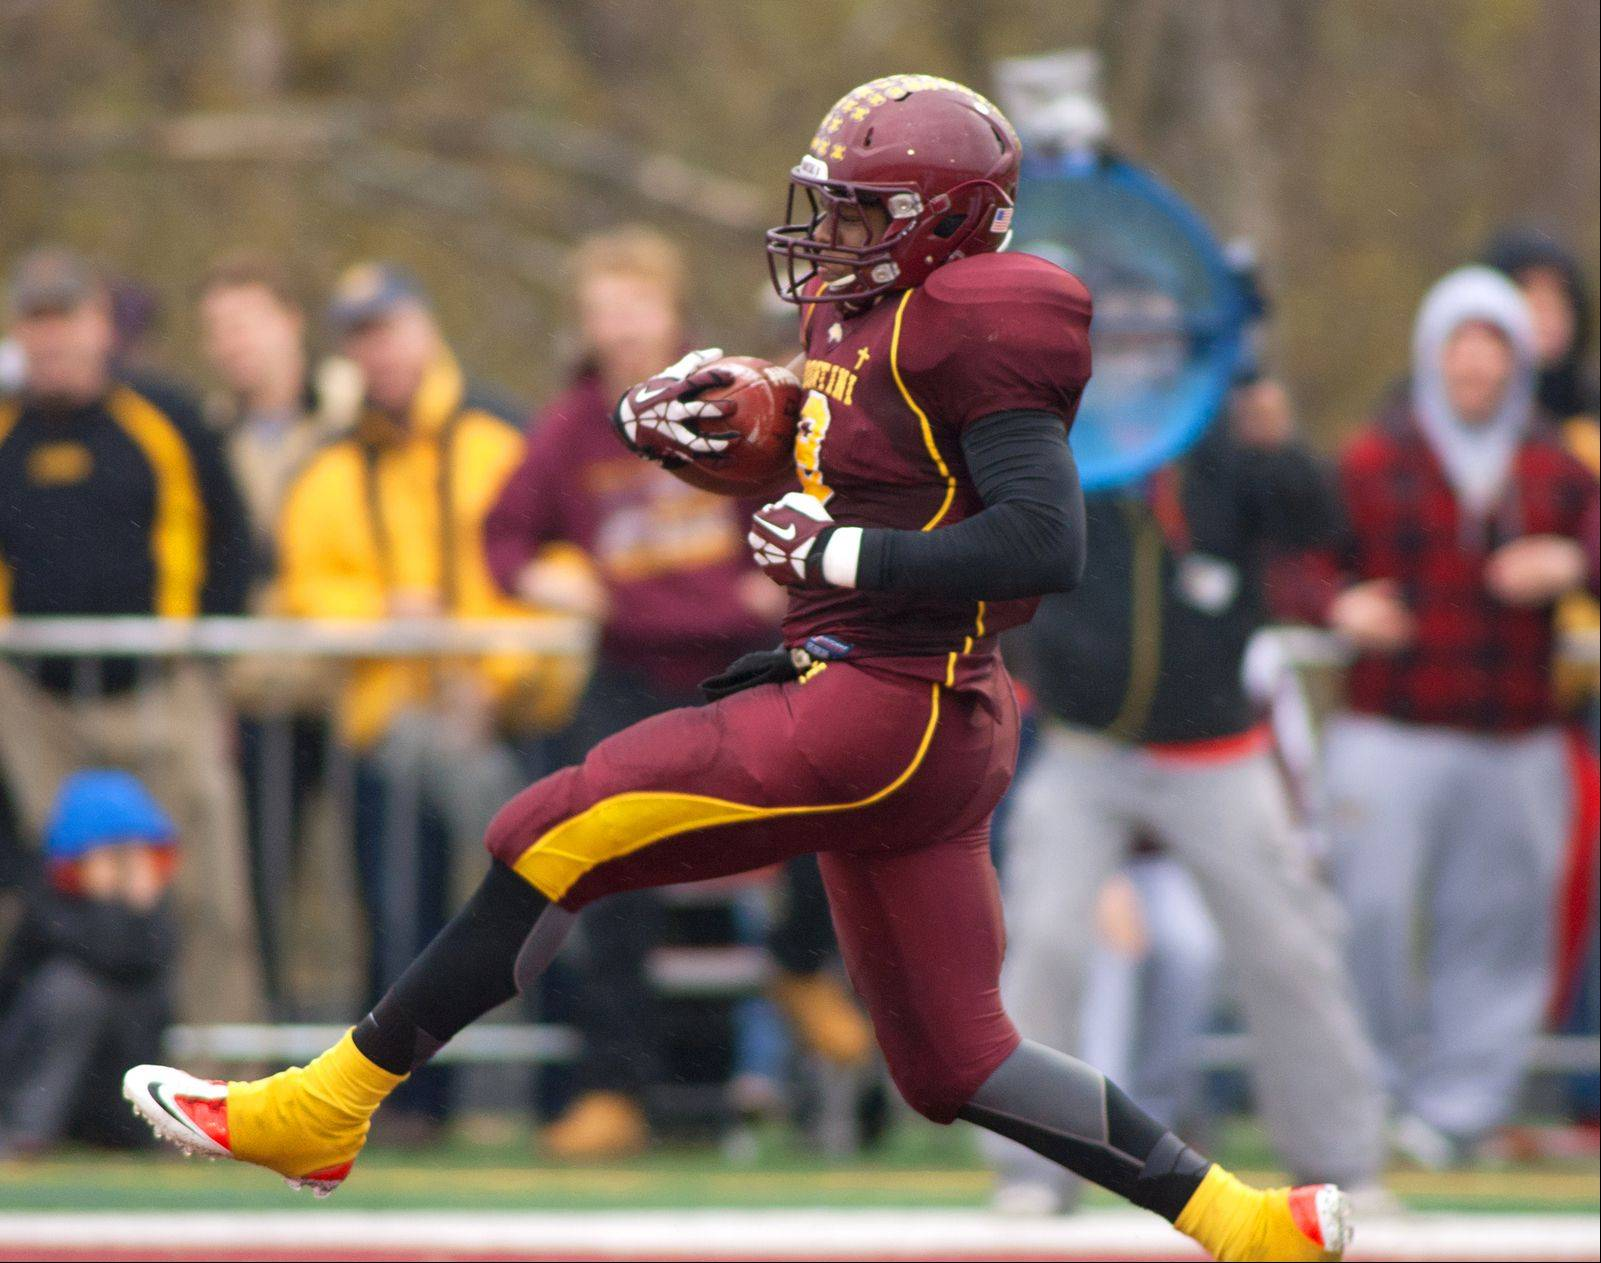 Montini Catholic's Niles Sykes (9) scampers into the endzone scoring a second half touchdown, against Joliet Catholic during Class 5A quarterfinal action in Lombard.